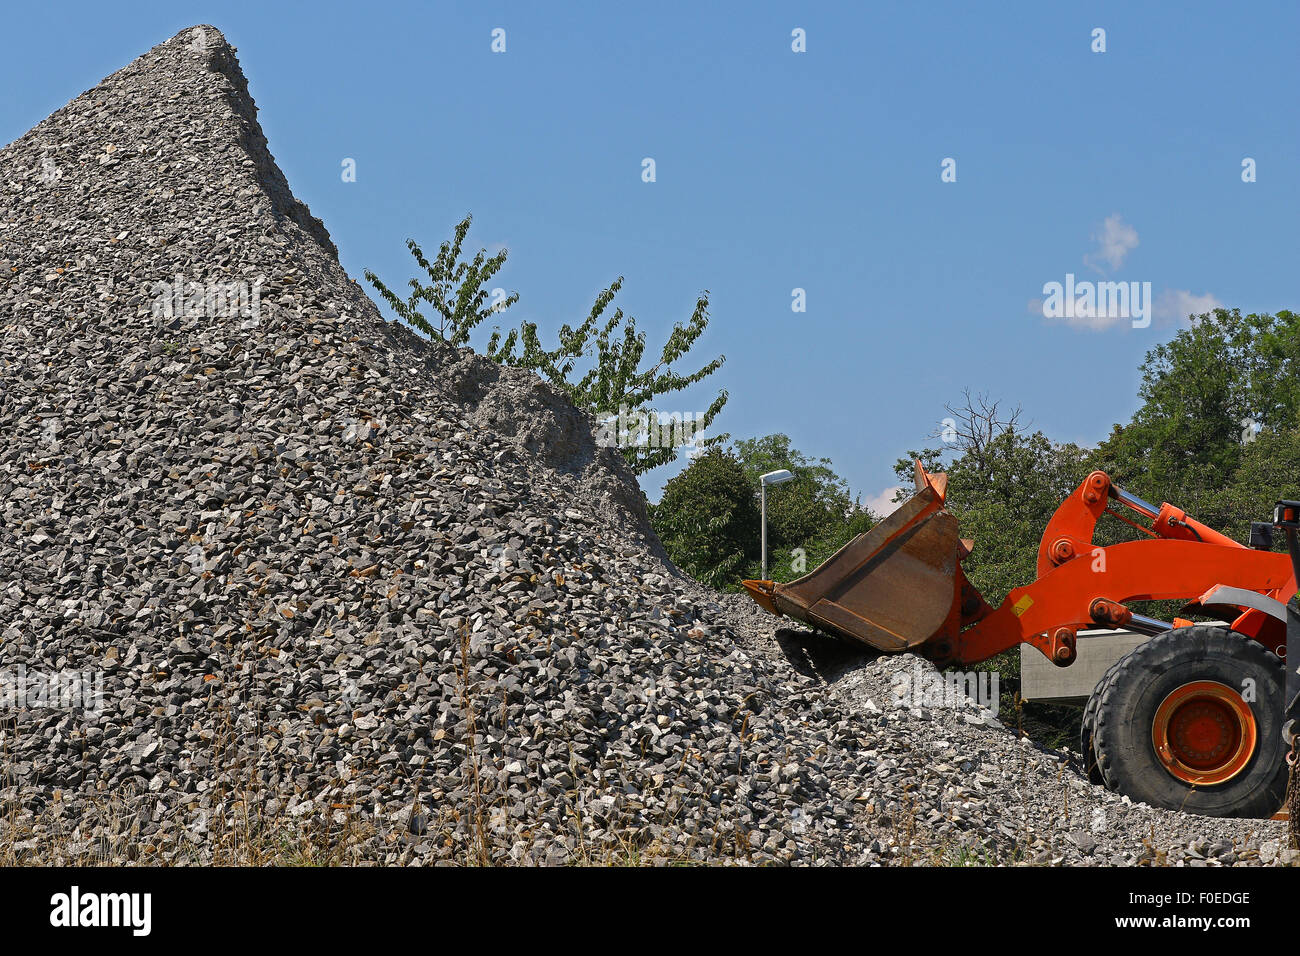 Excavator in front of a pile of rubble outside a mine against blue skies - Stock Image